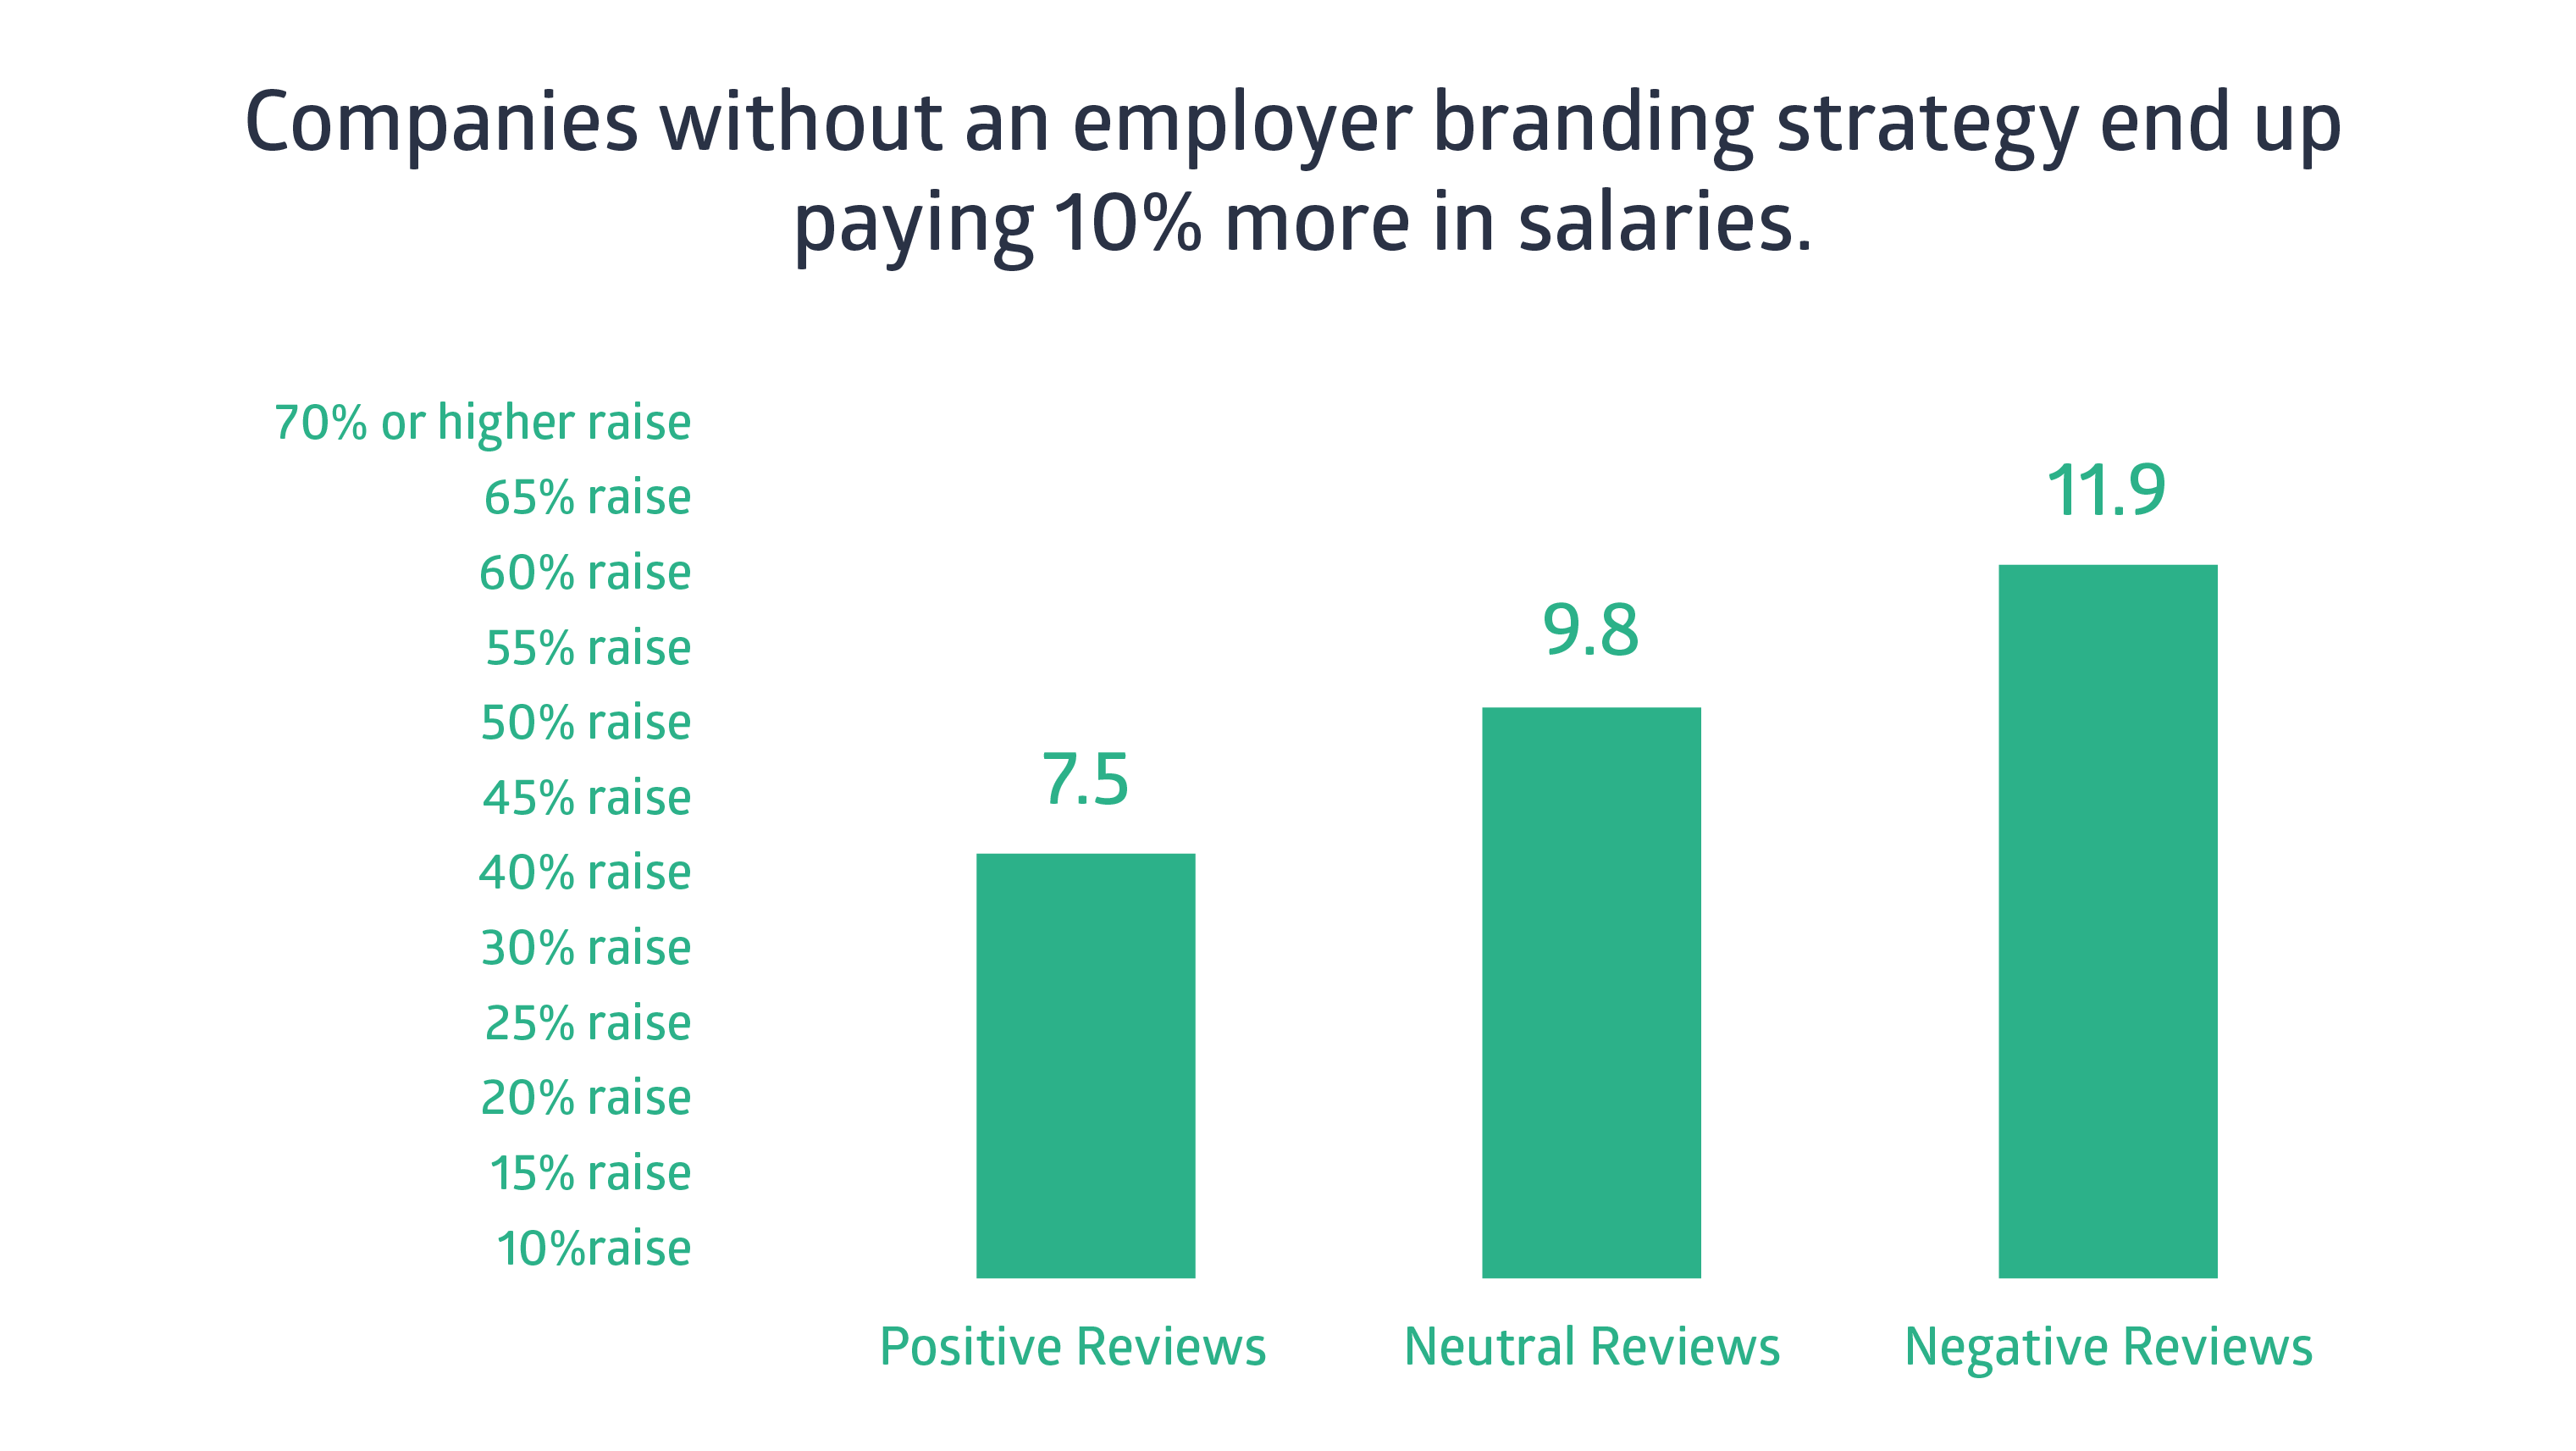 Companies without an employer branding